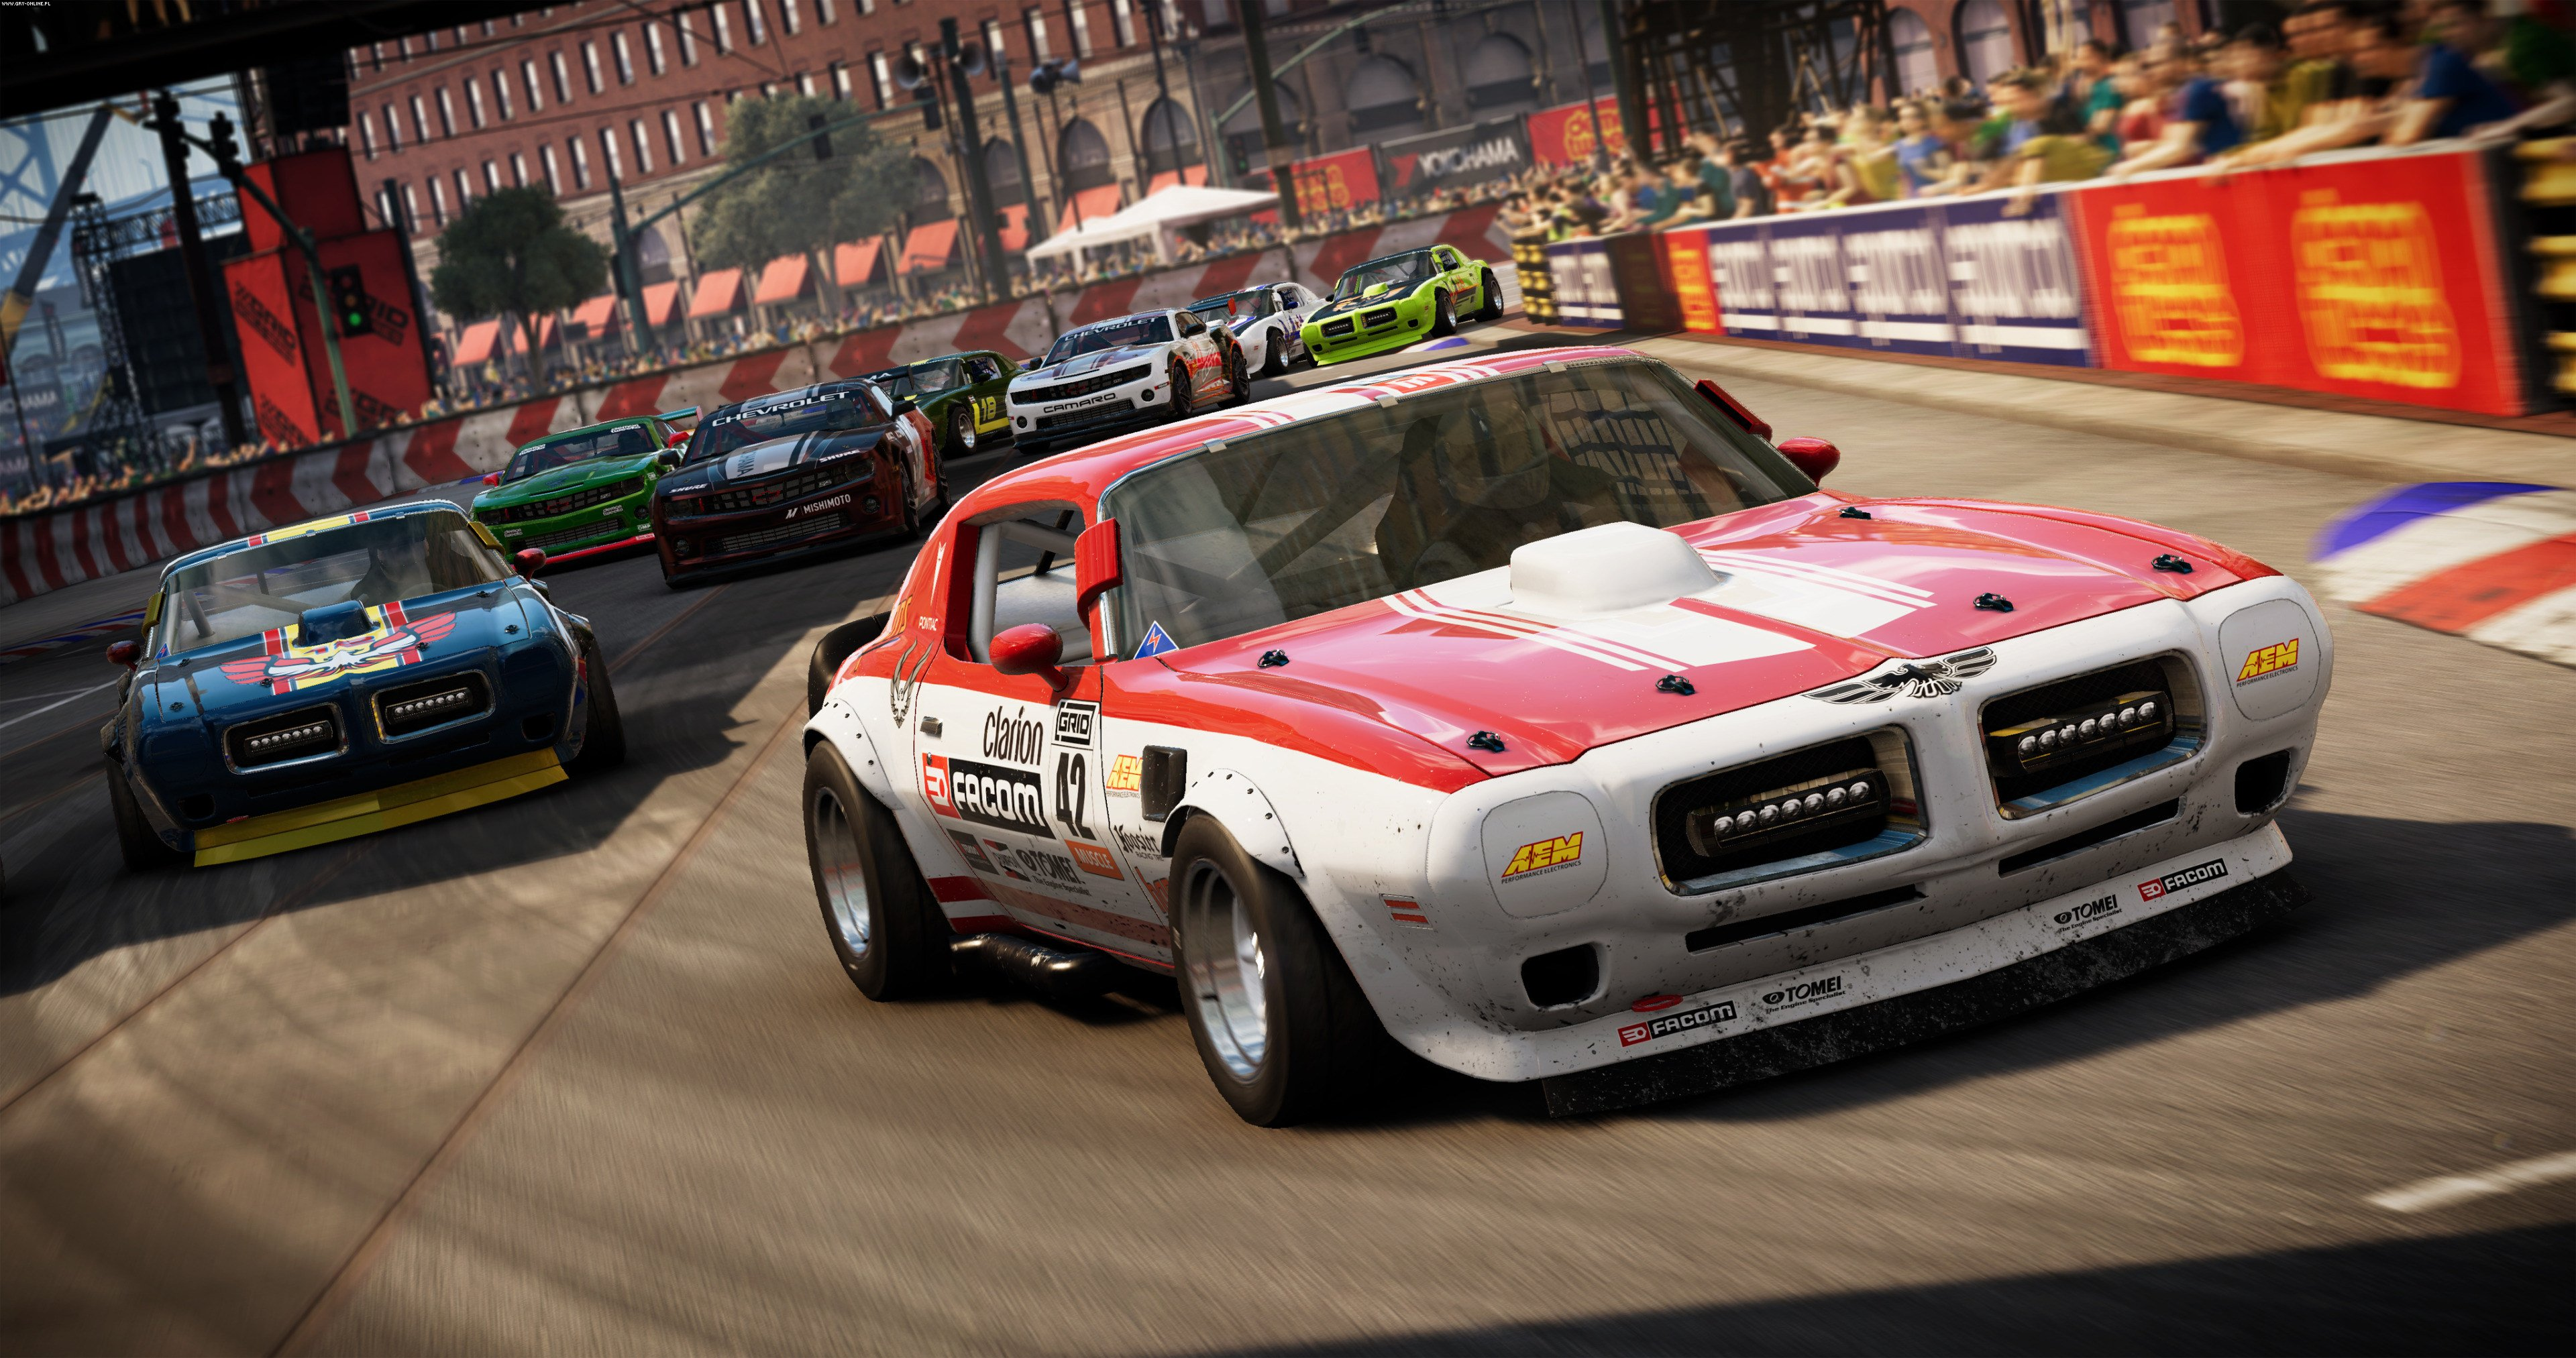 GRID PC, PS4, XONE Games Image 76/85, Codemasters Software